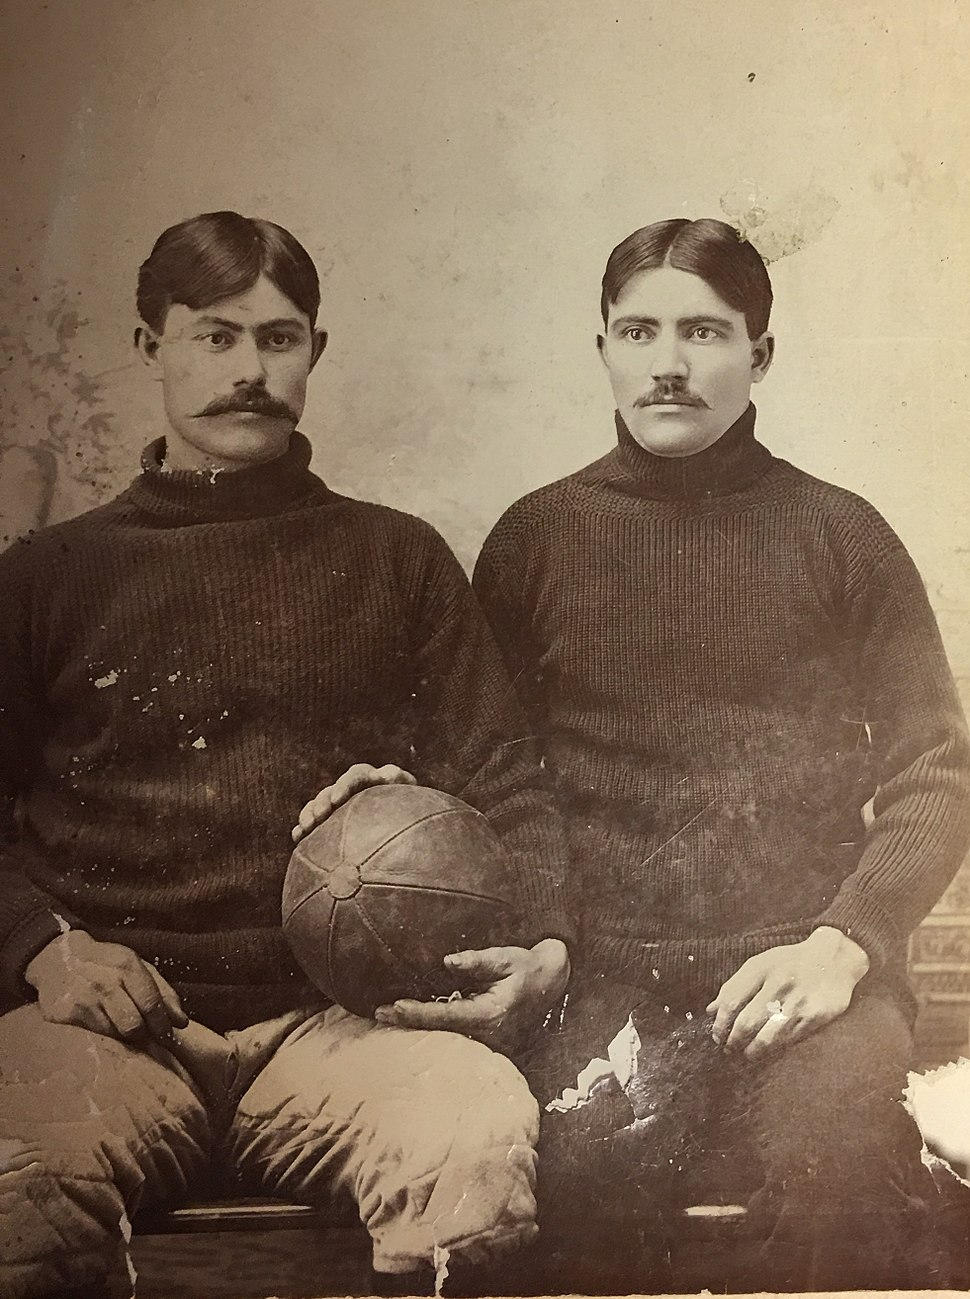 Fielding Yost and teammate c 1895 or 1896